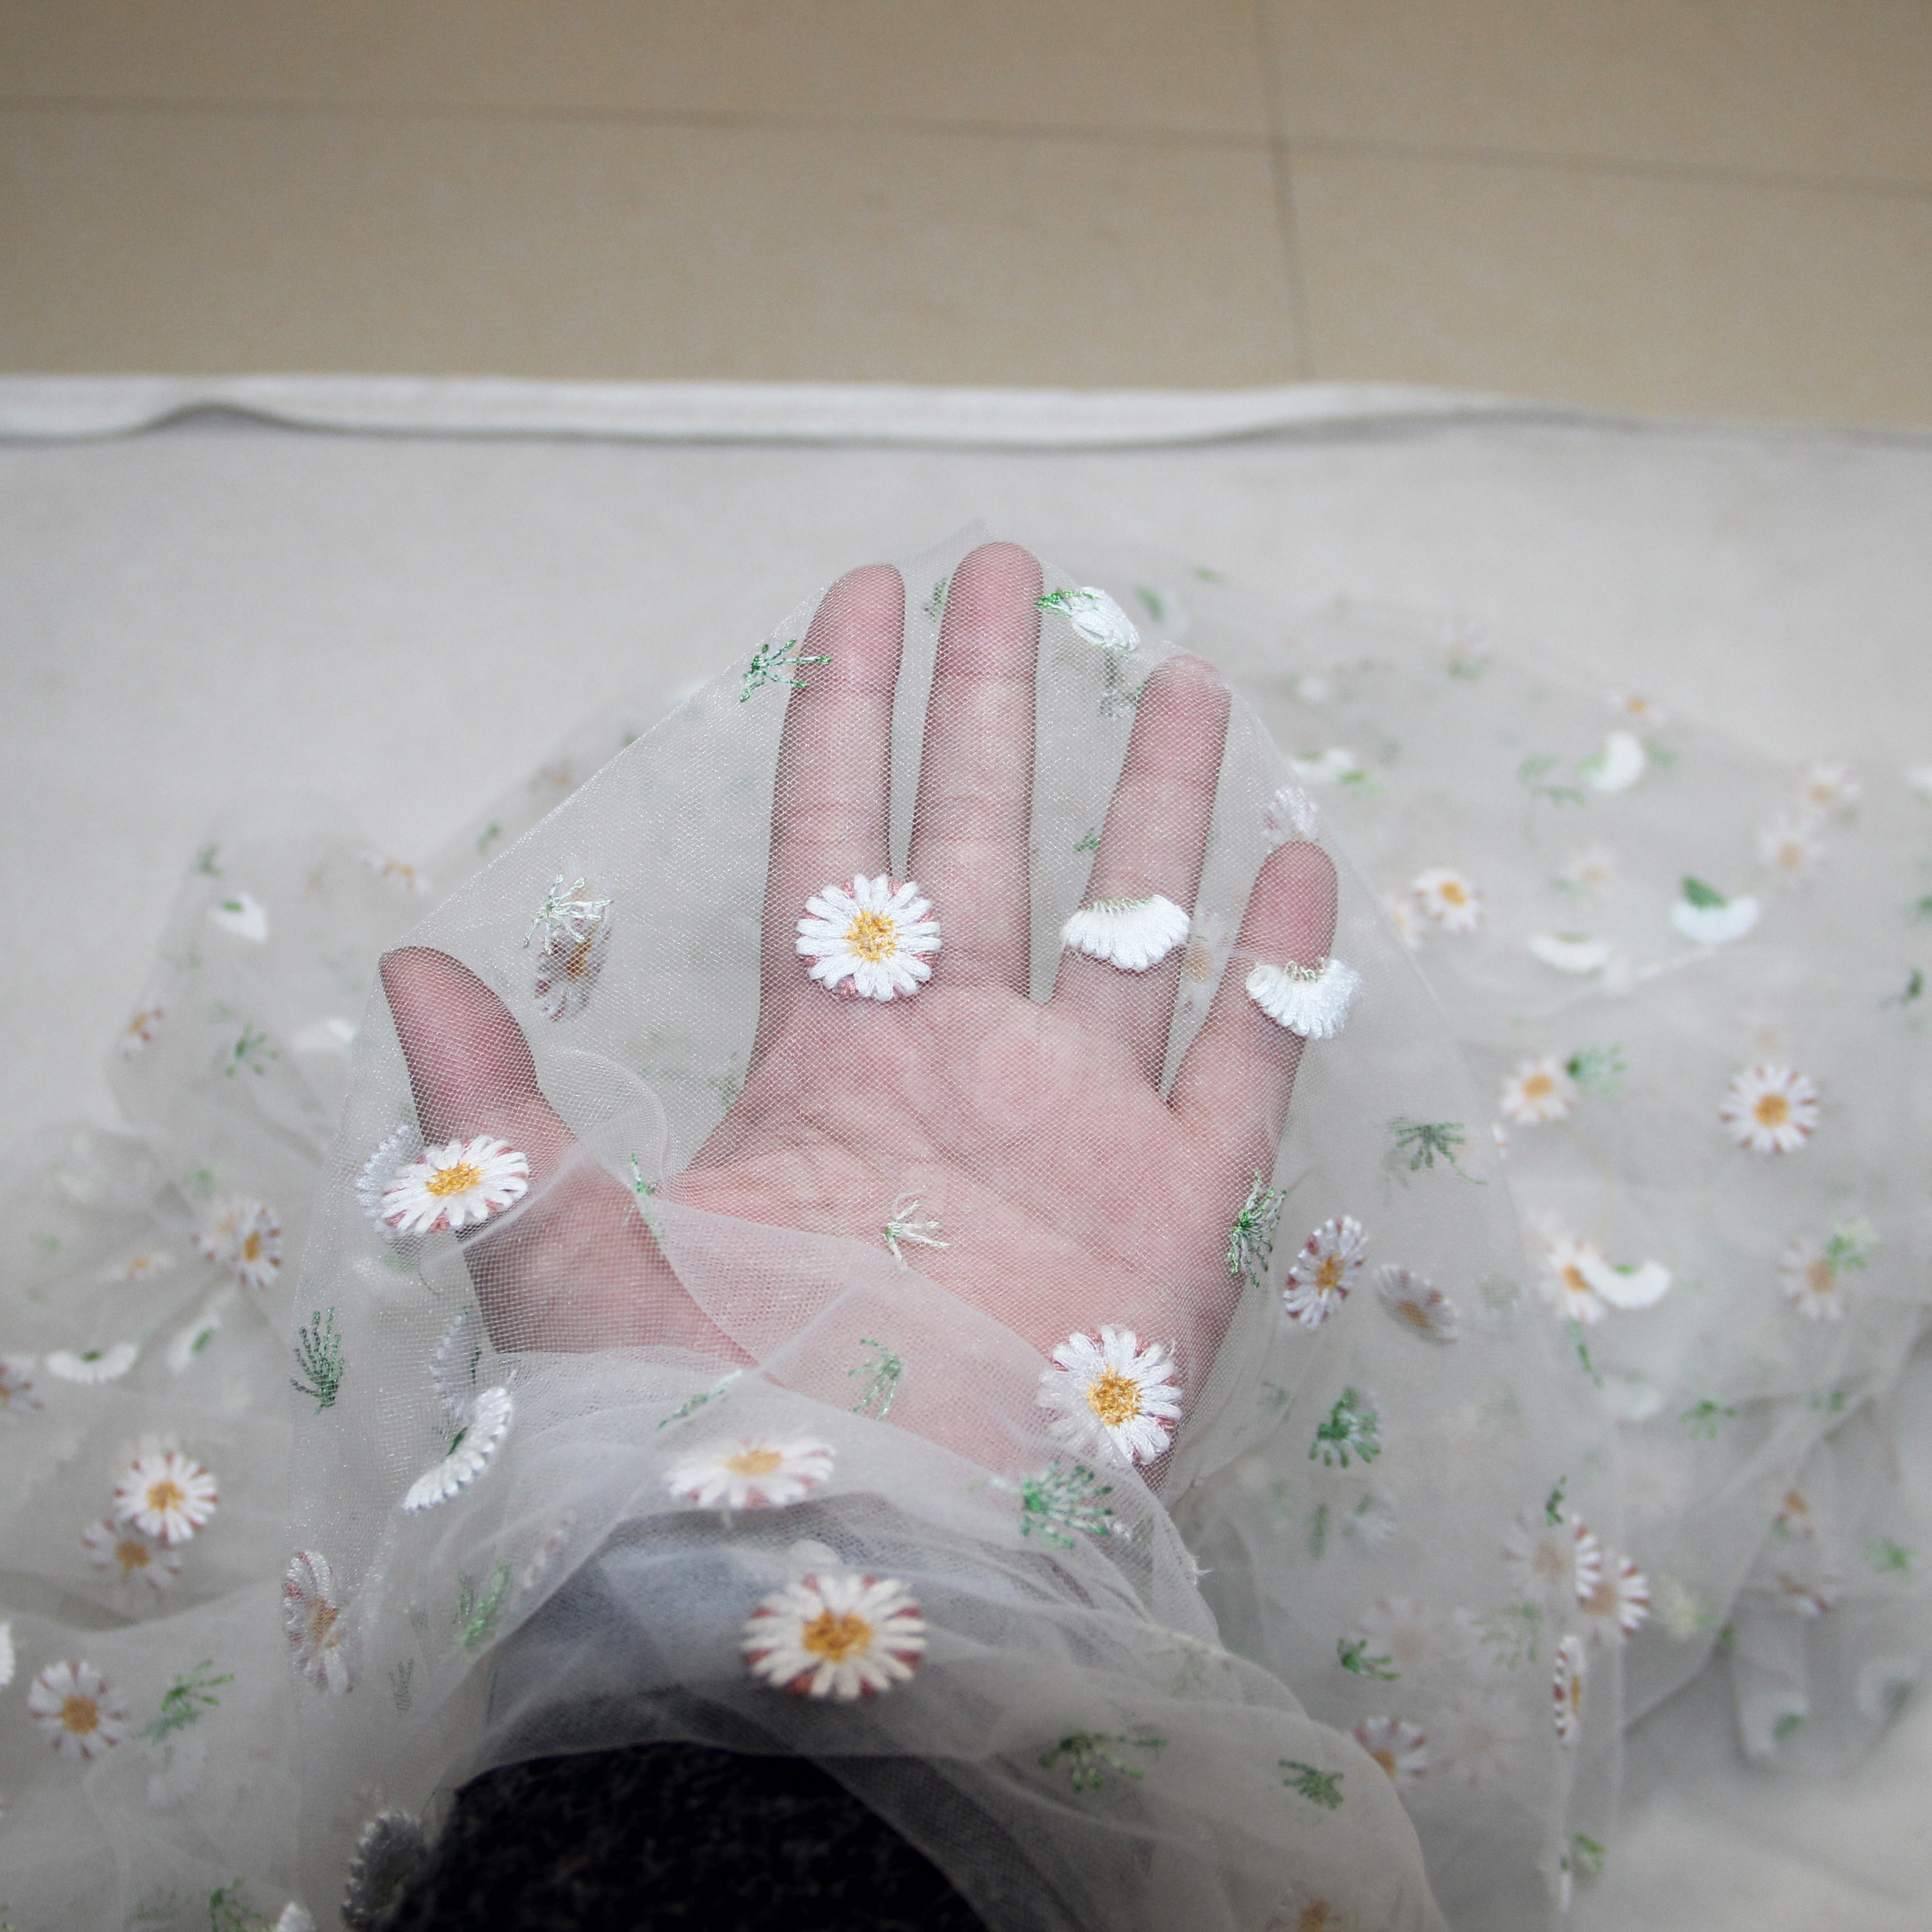 3meters Nylon Little Daisy Embroidered Soft Mesh Tulle Fabric Accessory For DIY Wedding Tutu Dress